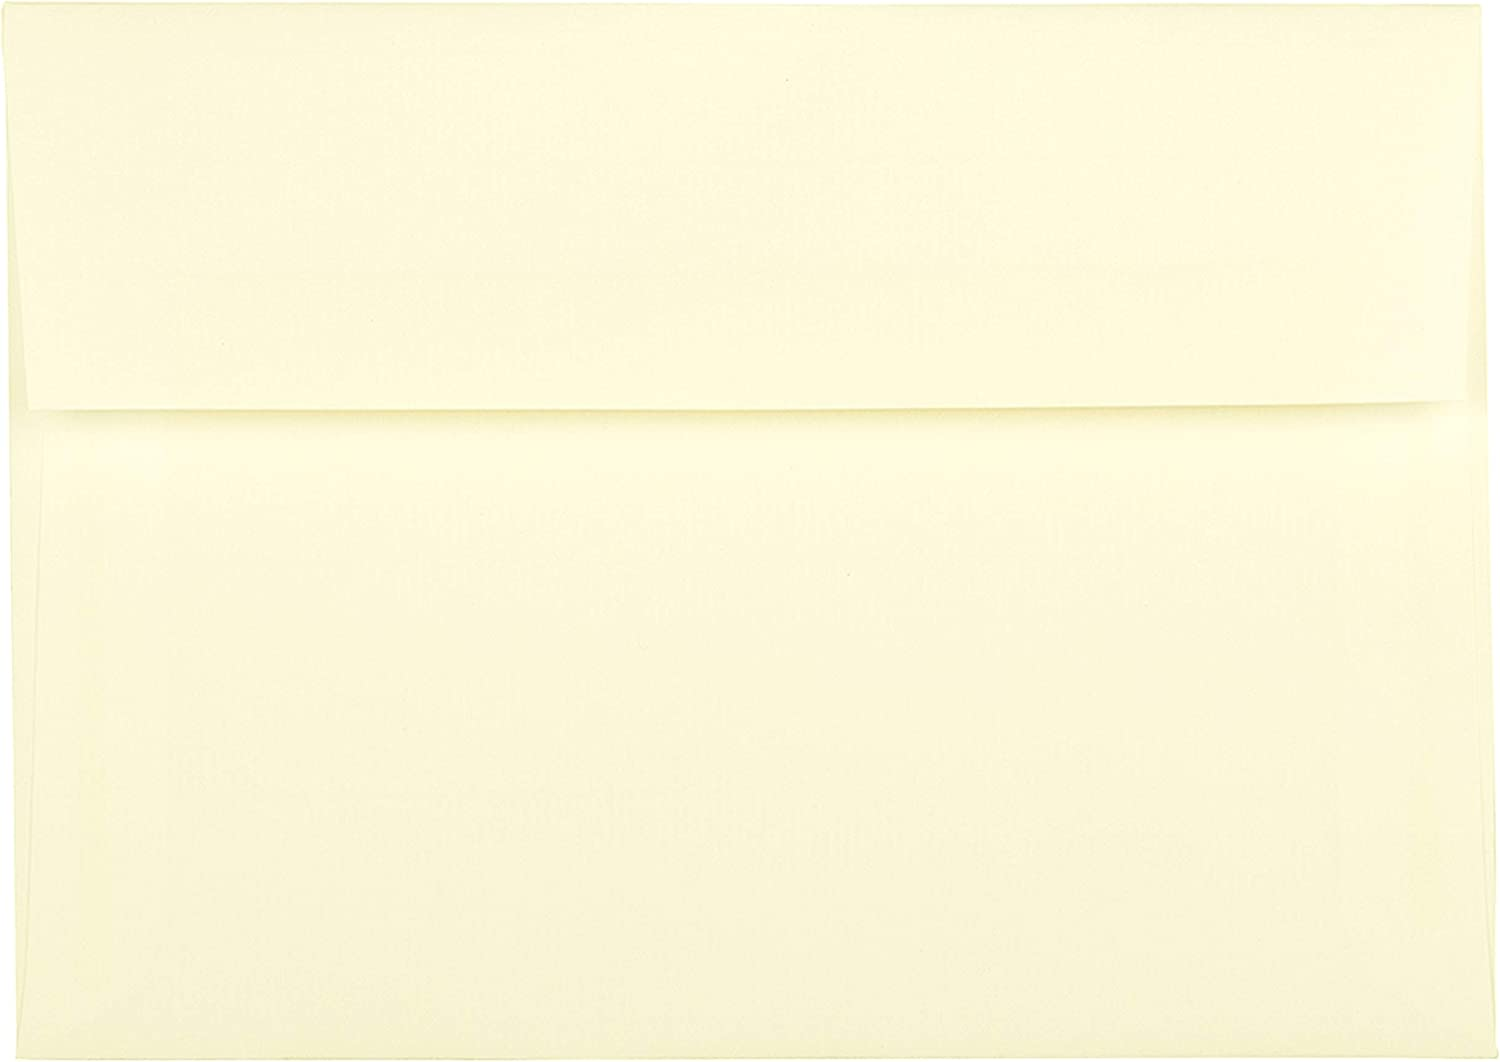 Canary Yellow Pastel 25 Pack A7 Envelopes for 5 X 7 Invitations Announcements Communions Confirmations Showers from The Envelope Gallery